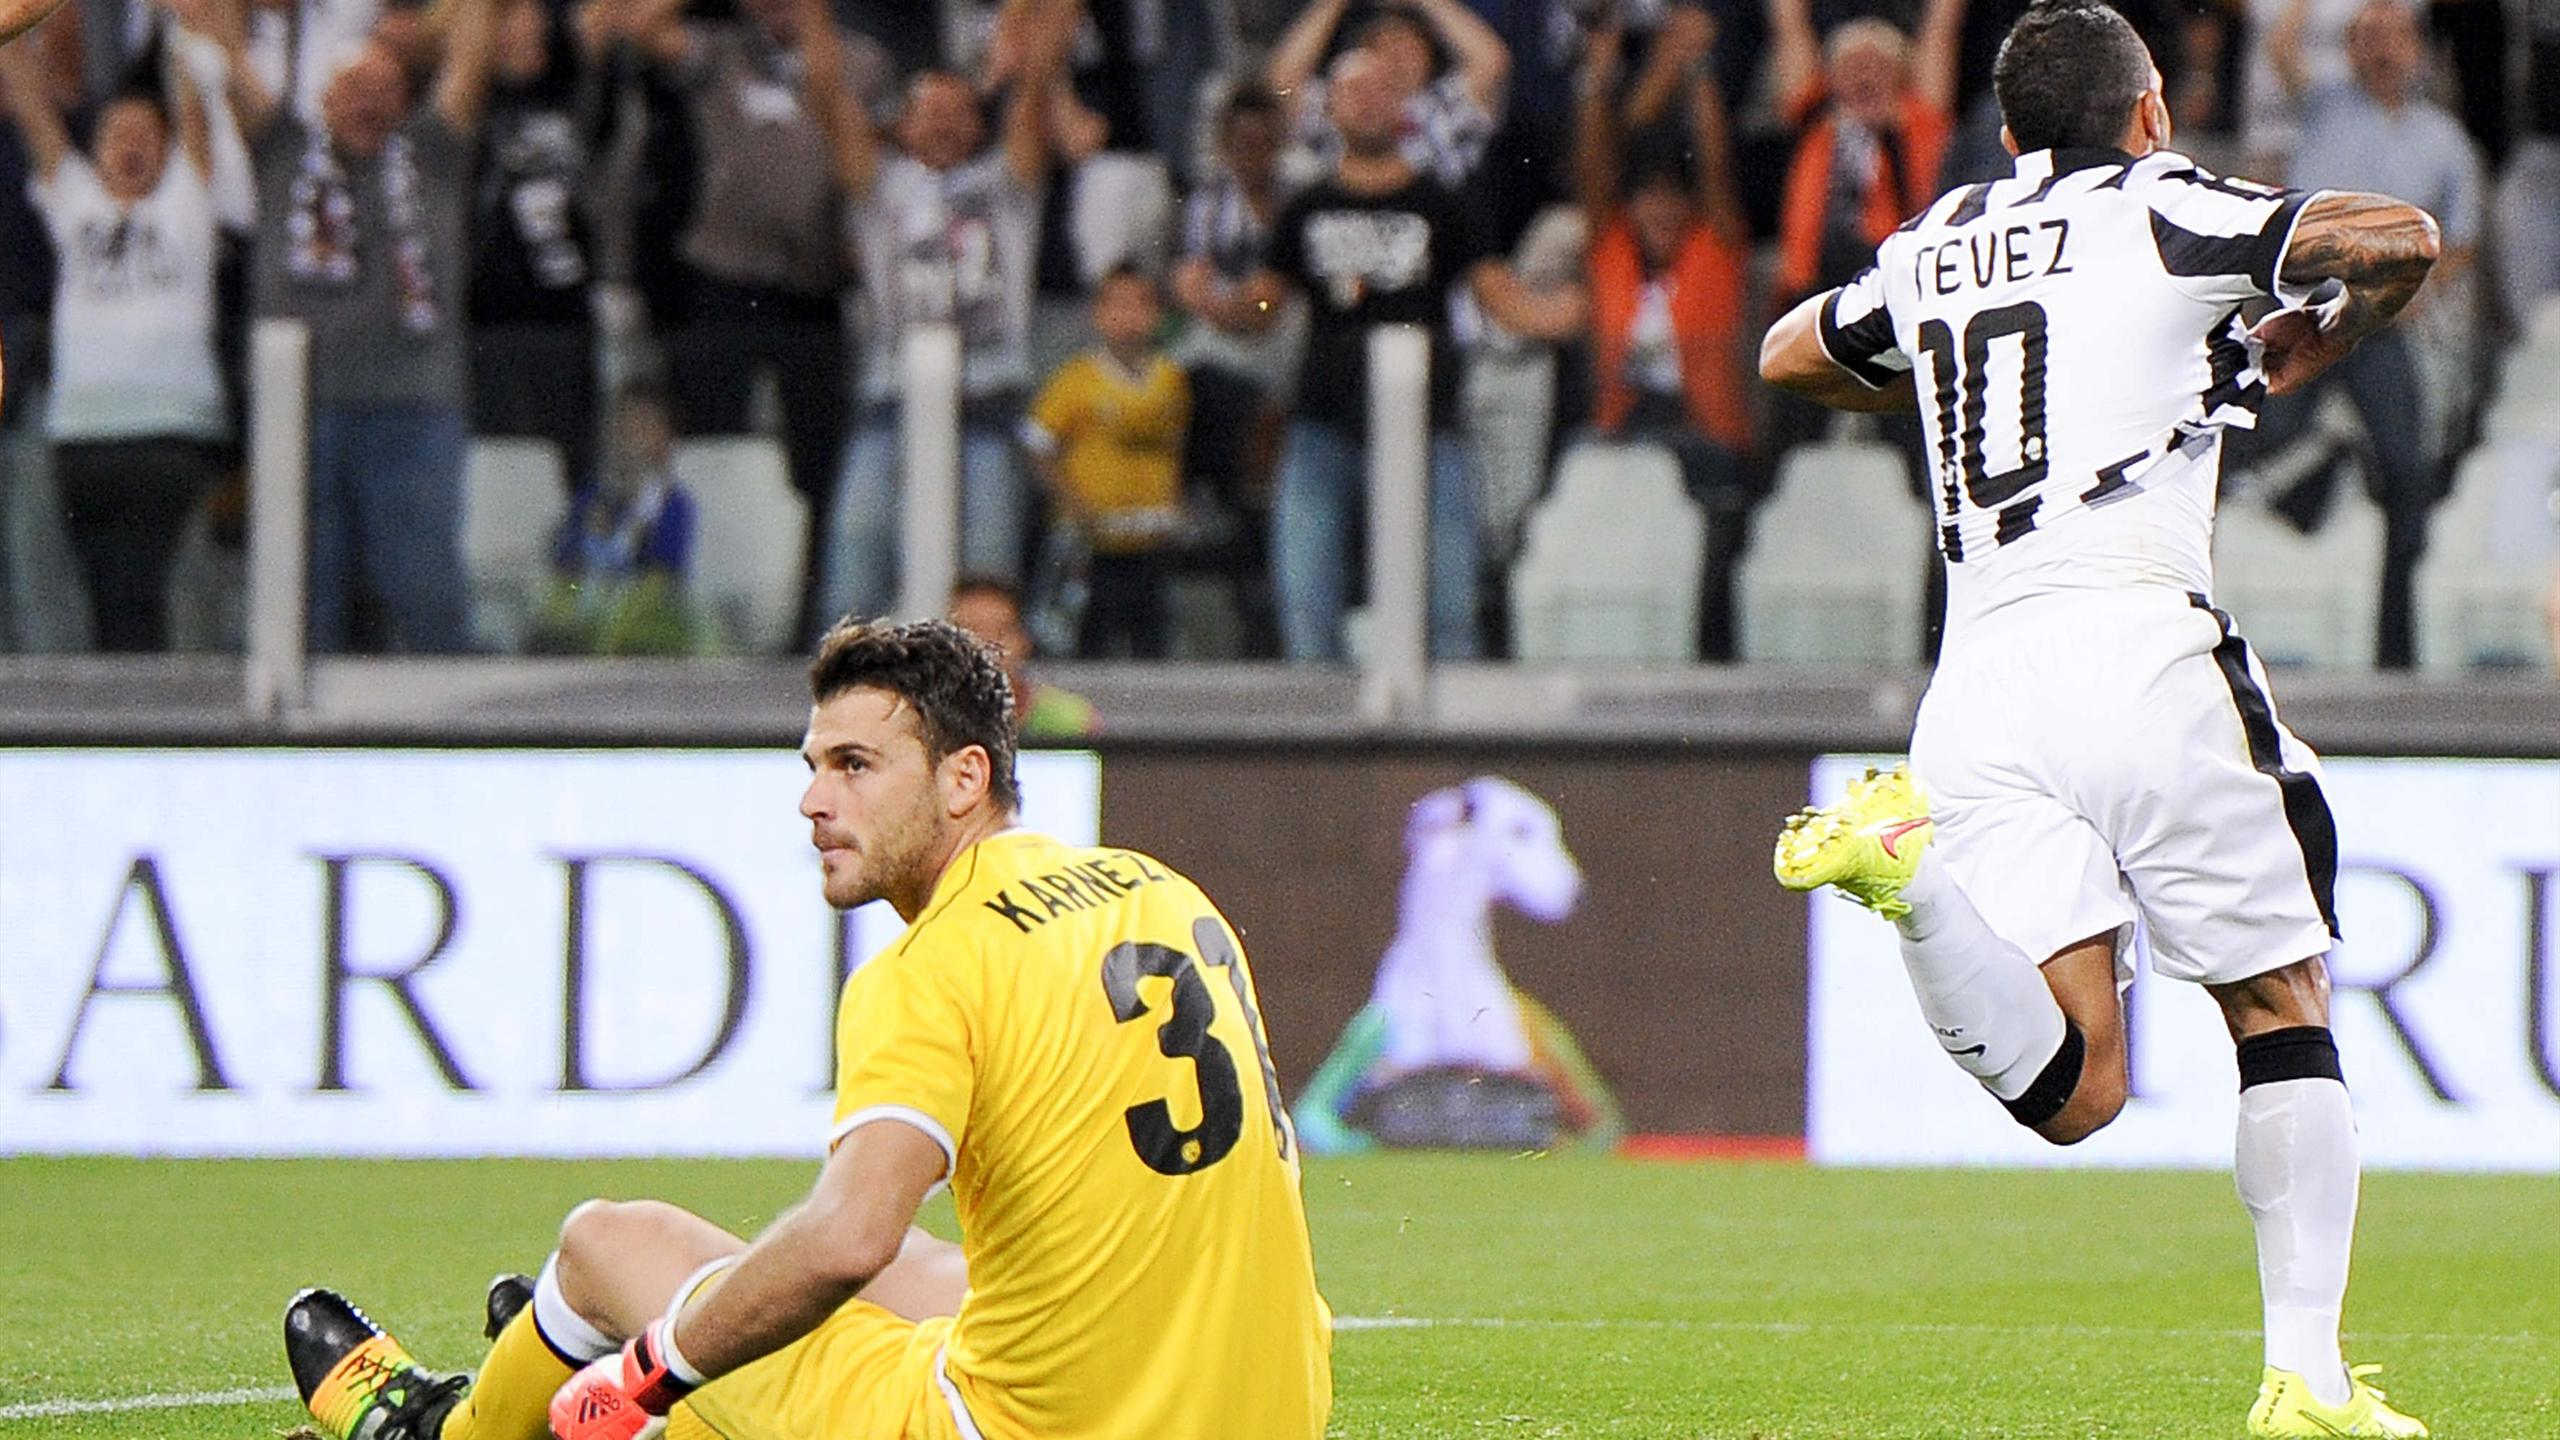 Video: Juventus vs Udinese